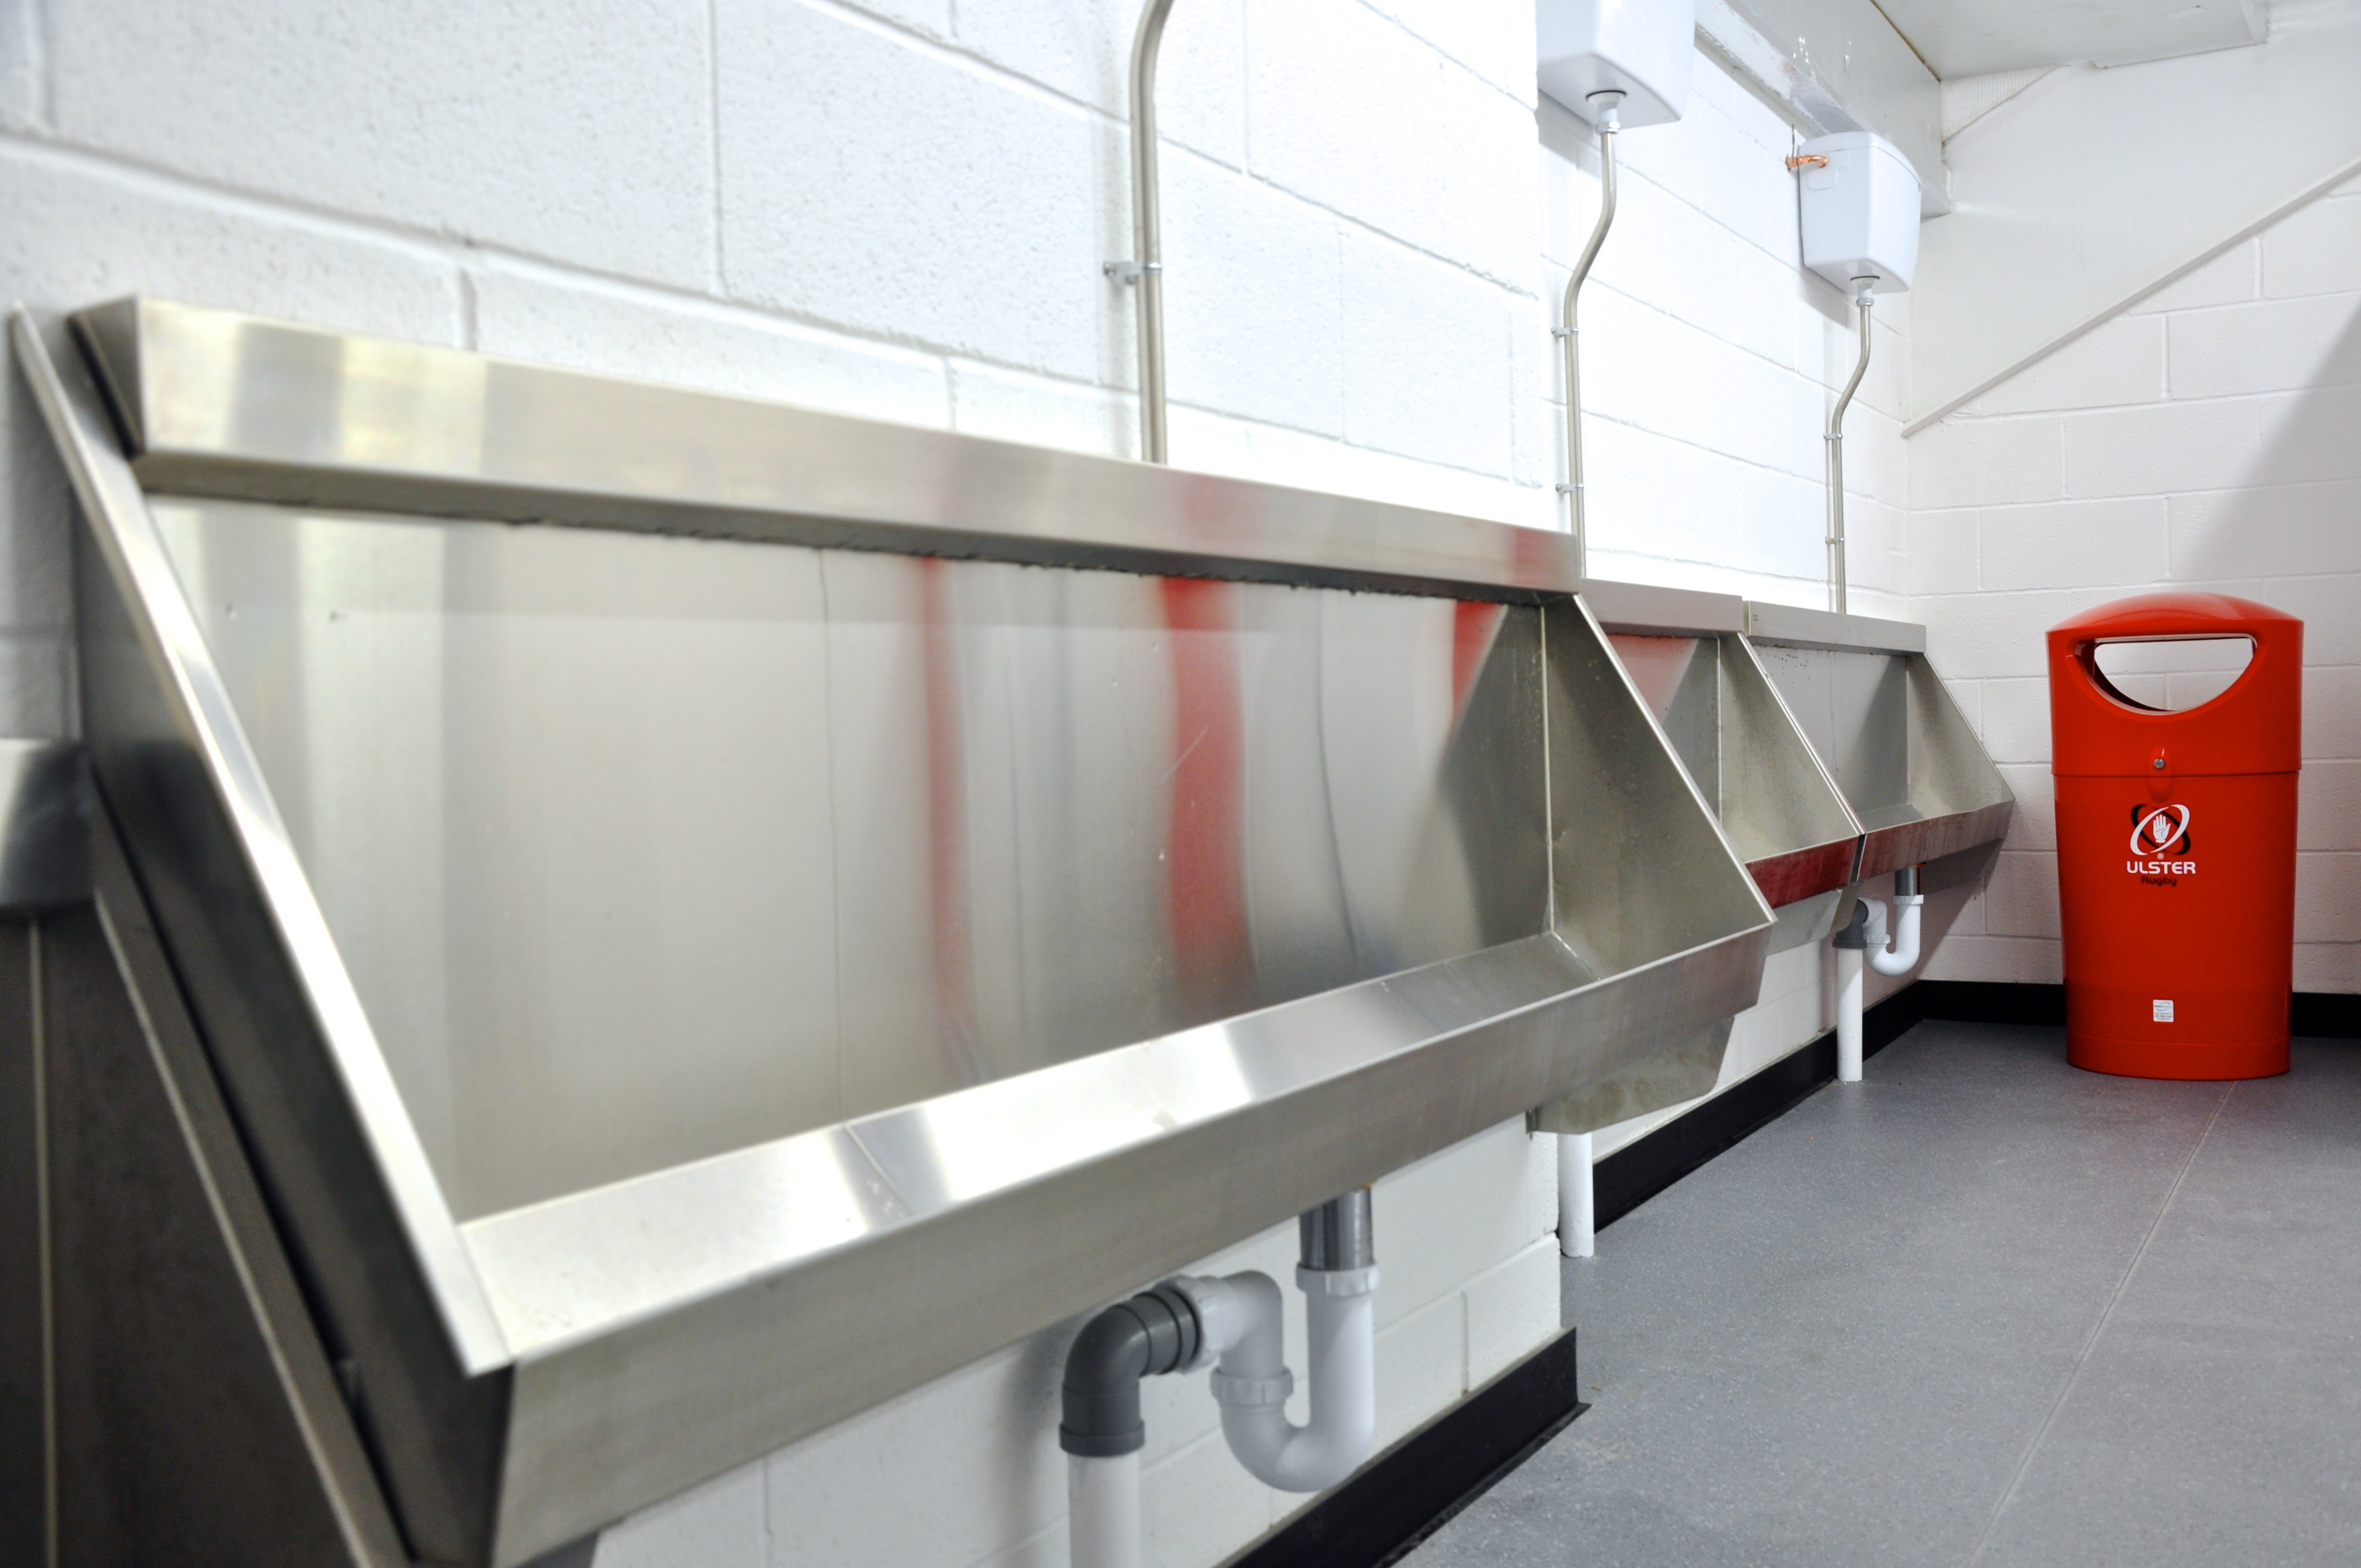 Stainless Steel urinal troughs and washtroughs were supplied to Ravenhill from Franke Washroom Systems